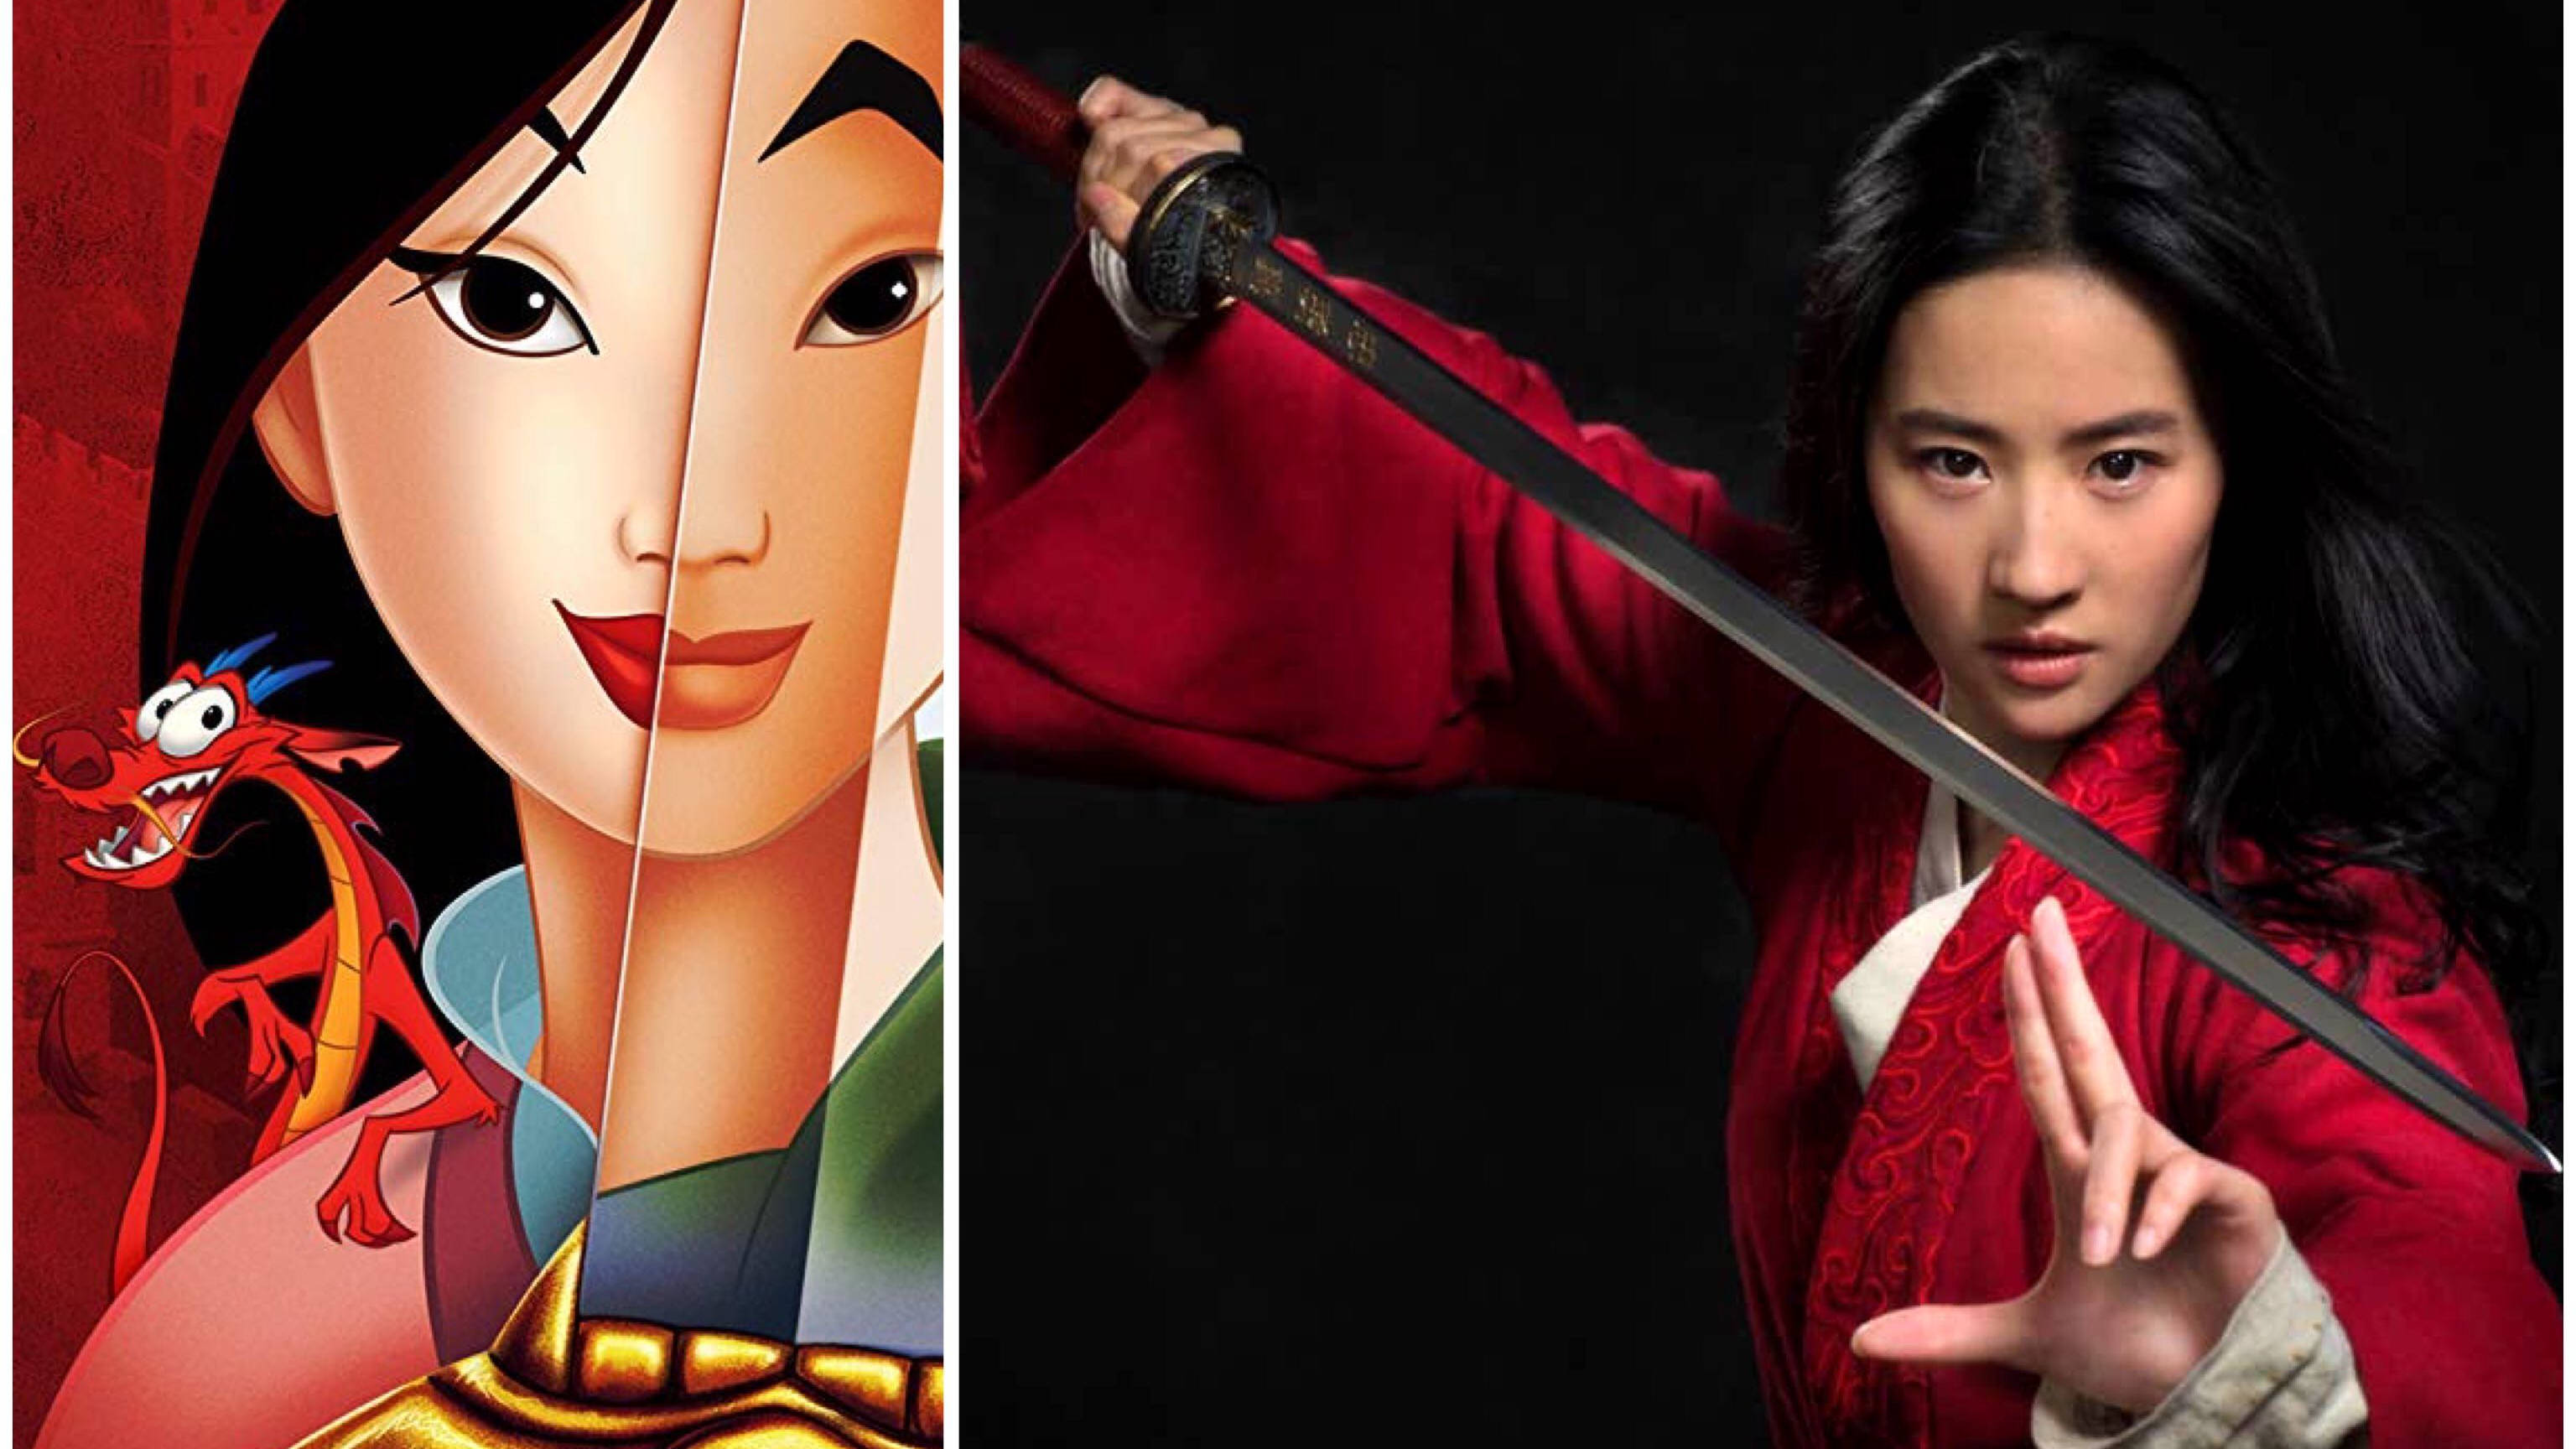 Mulan live-action remake: we reveal the Disney film's new trailer, release date, soundtrack and cast